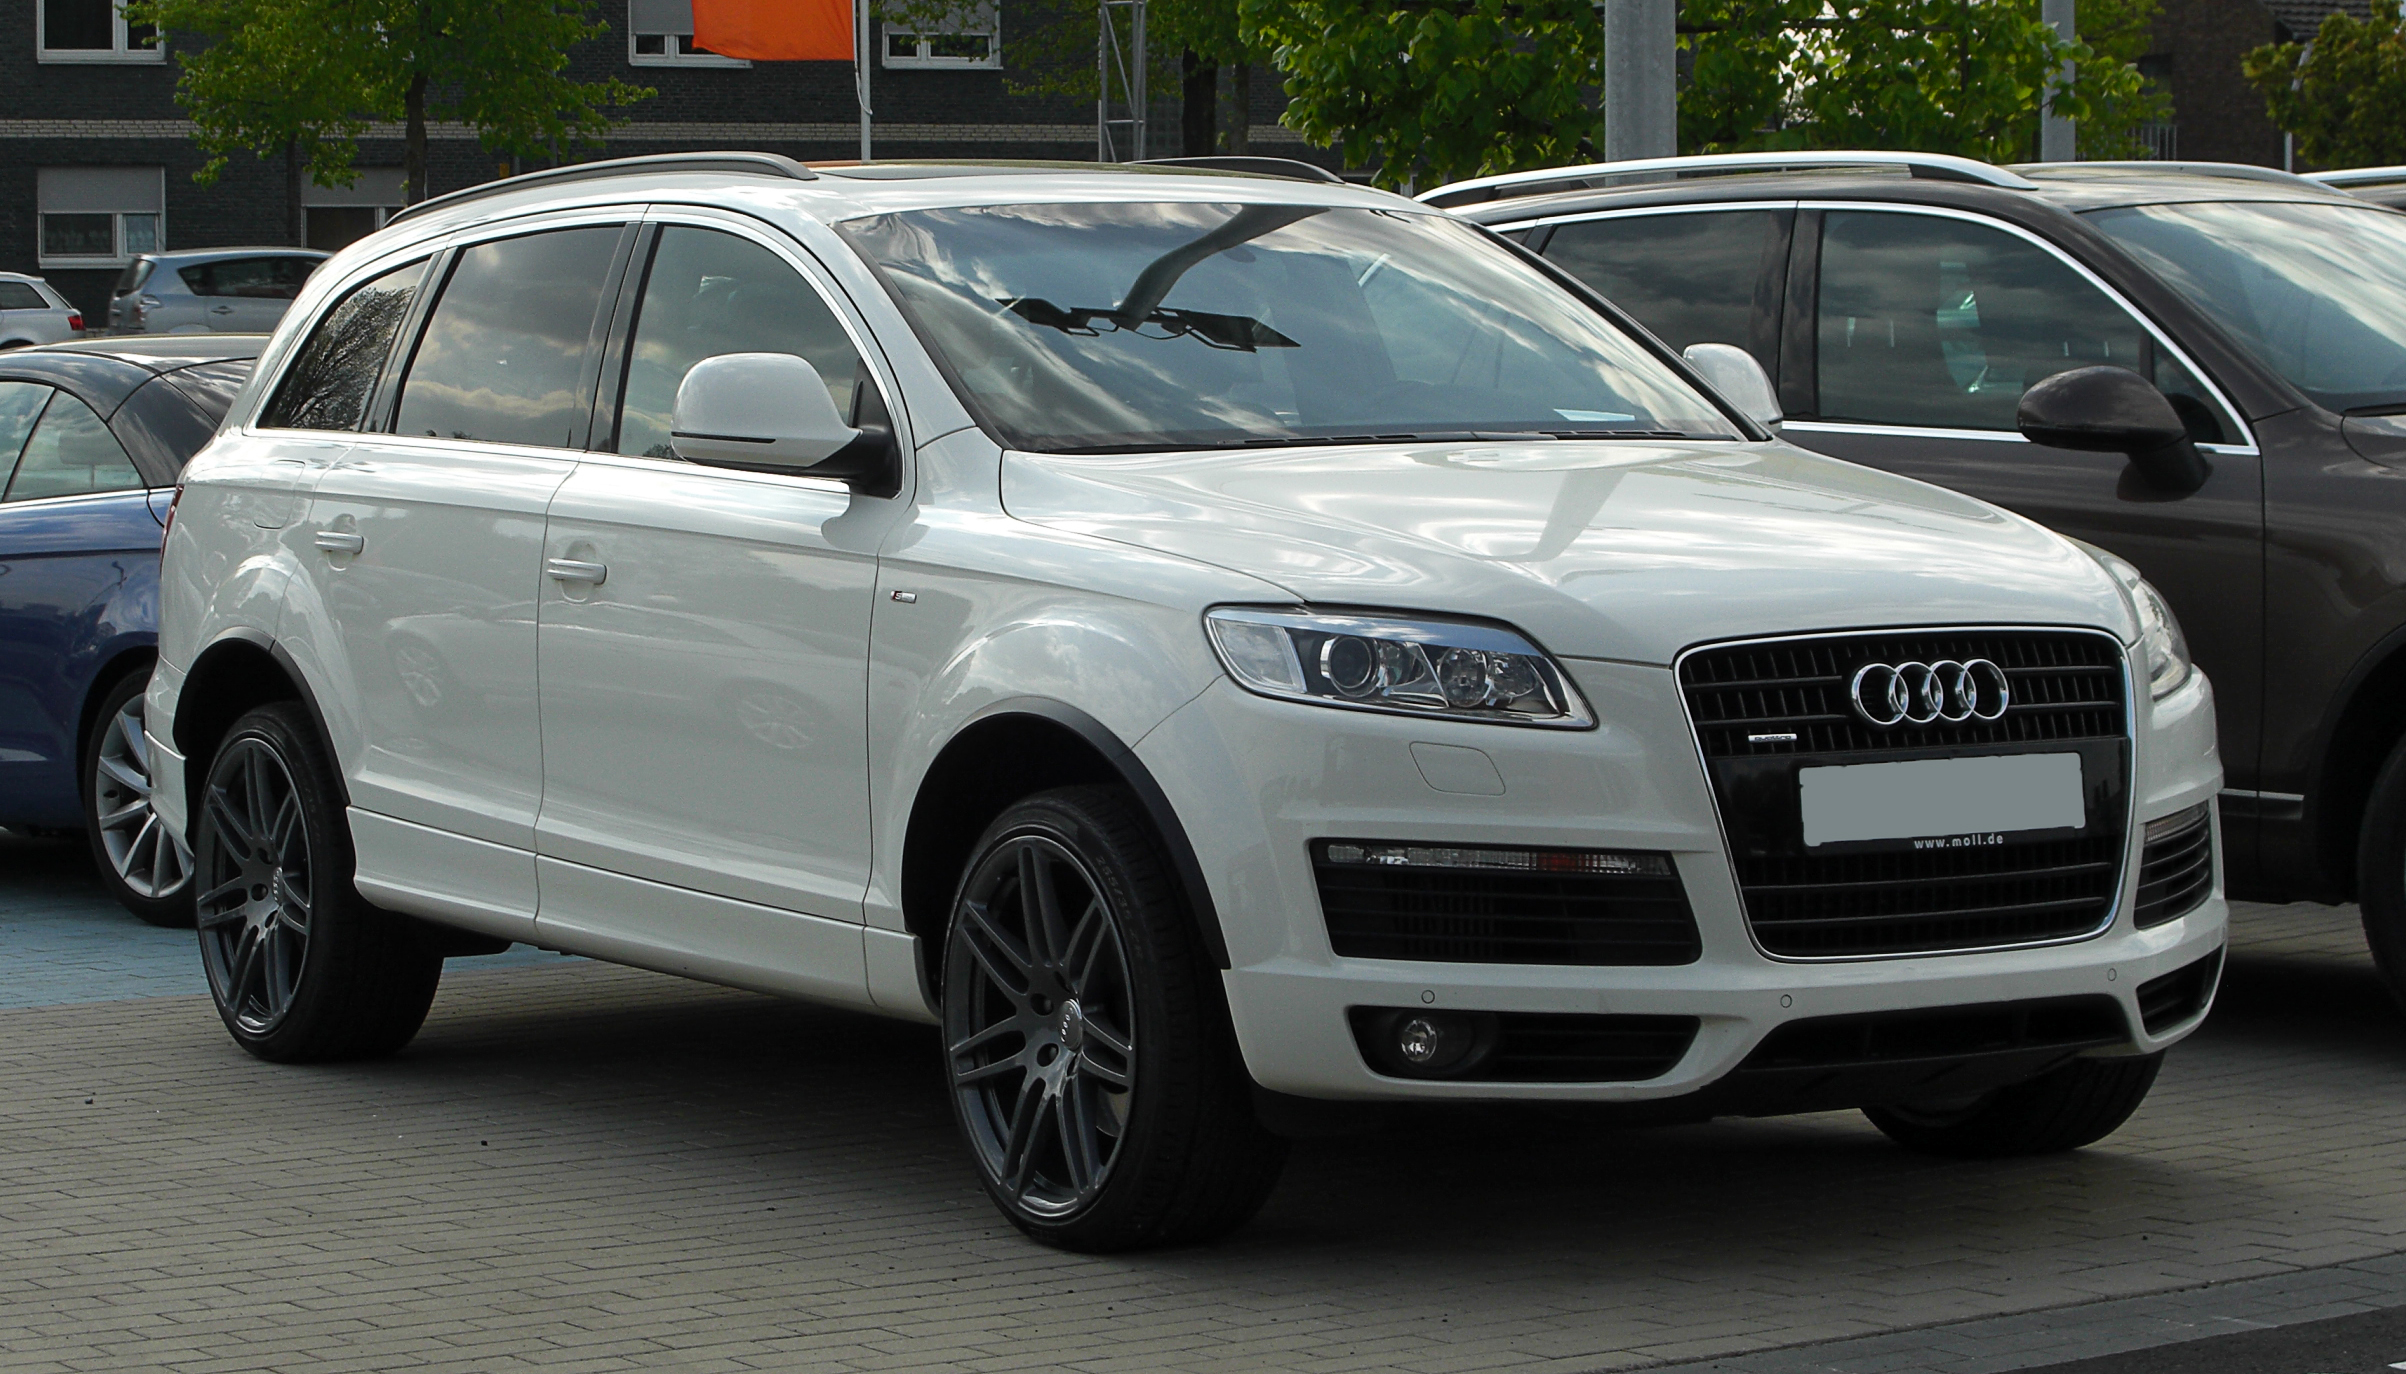 Audi Q5 Wikipedia >> File:Audi Q7 S-line – Frontansicht, 17. April 2011 ...